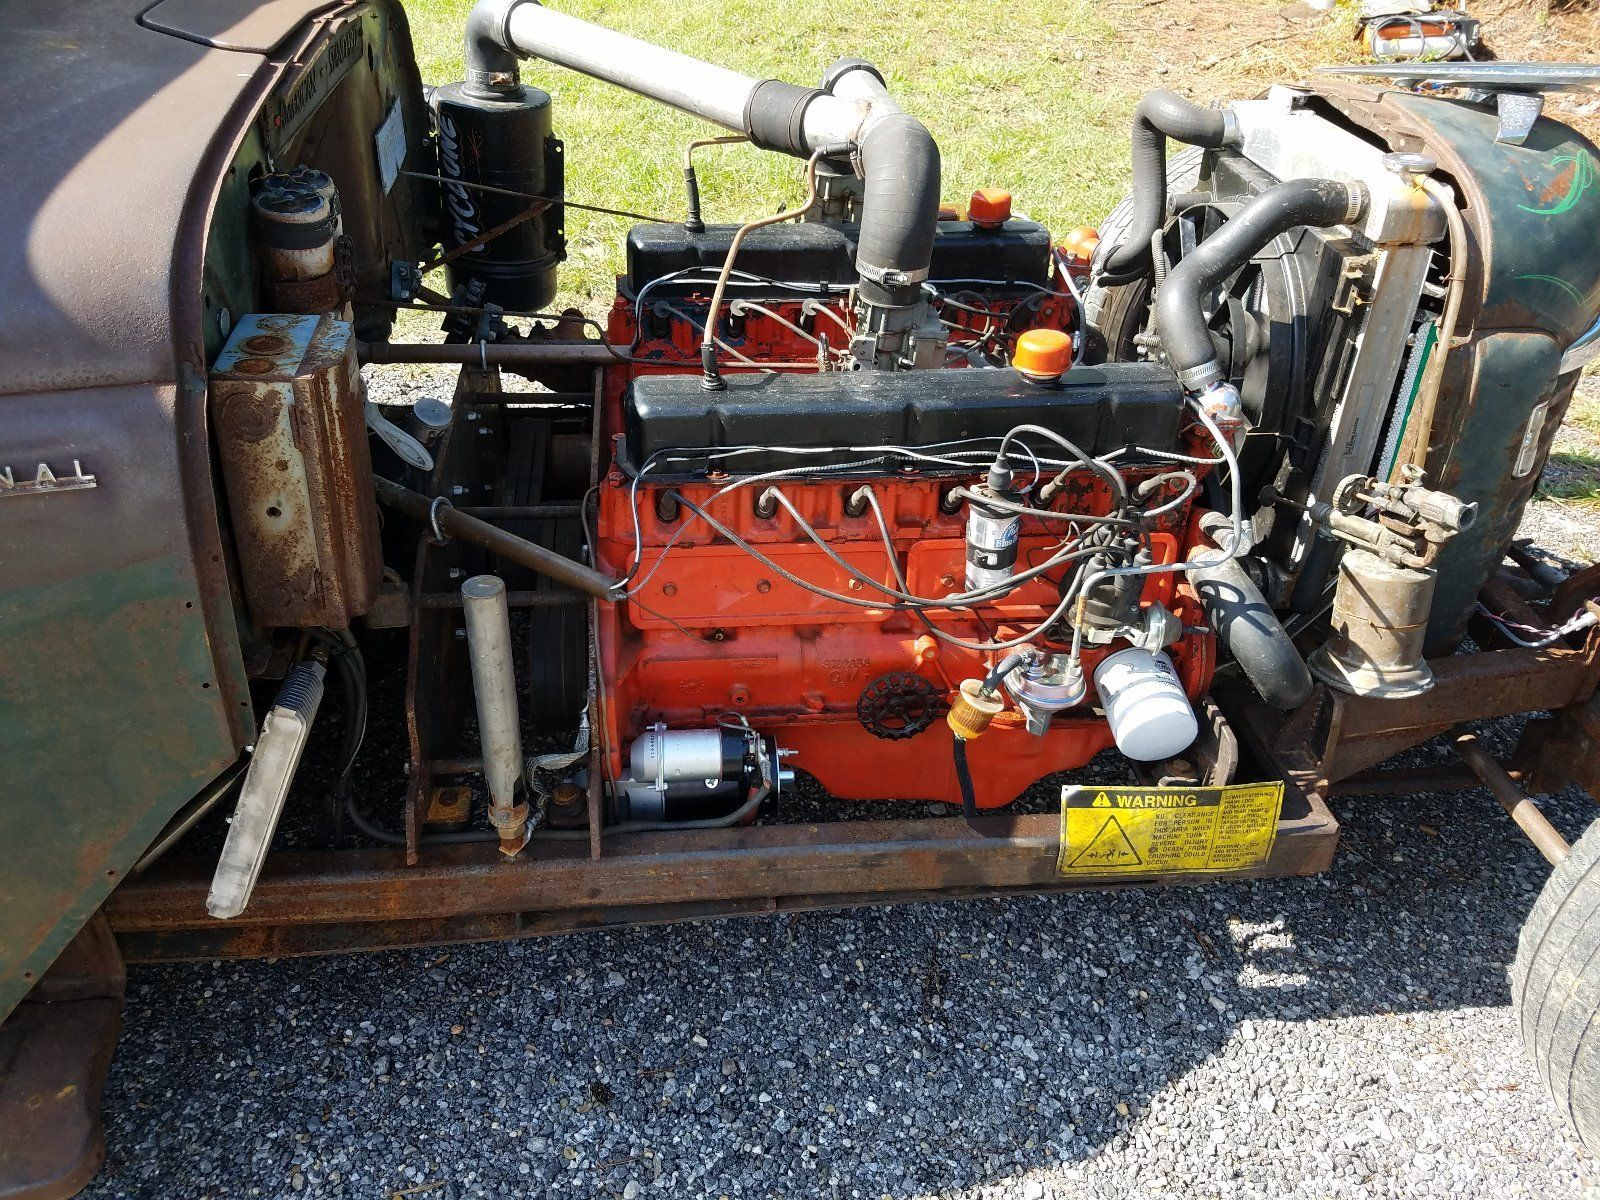 medium resolution of 53 international ratrod truck with two 230 6 cylinders turbo 350 transmission belt driven all tube chassis chevy dually rear end with 4 88 gears chain